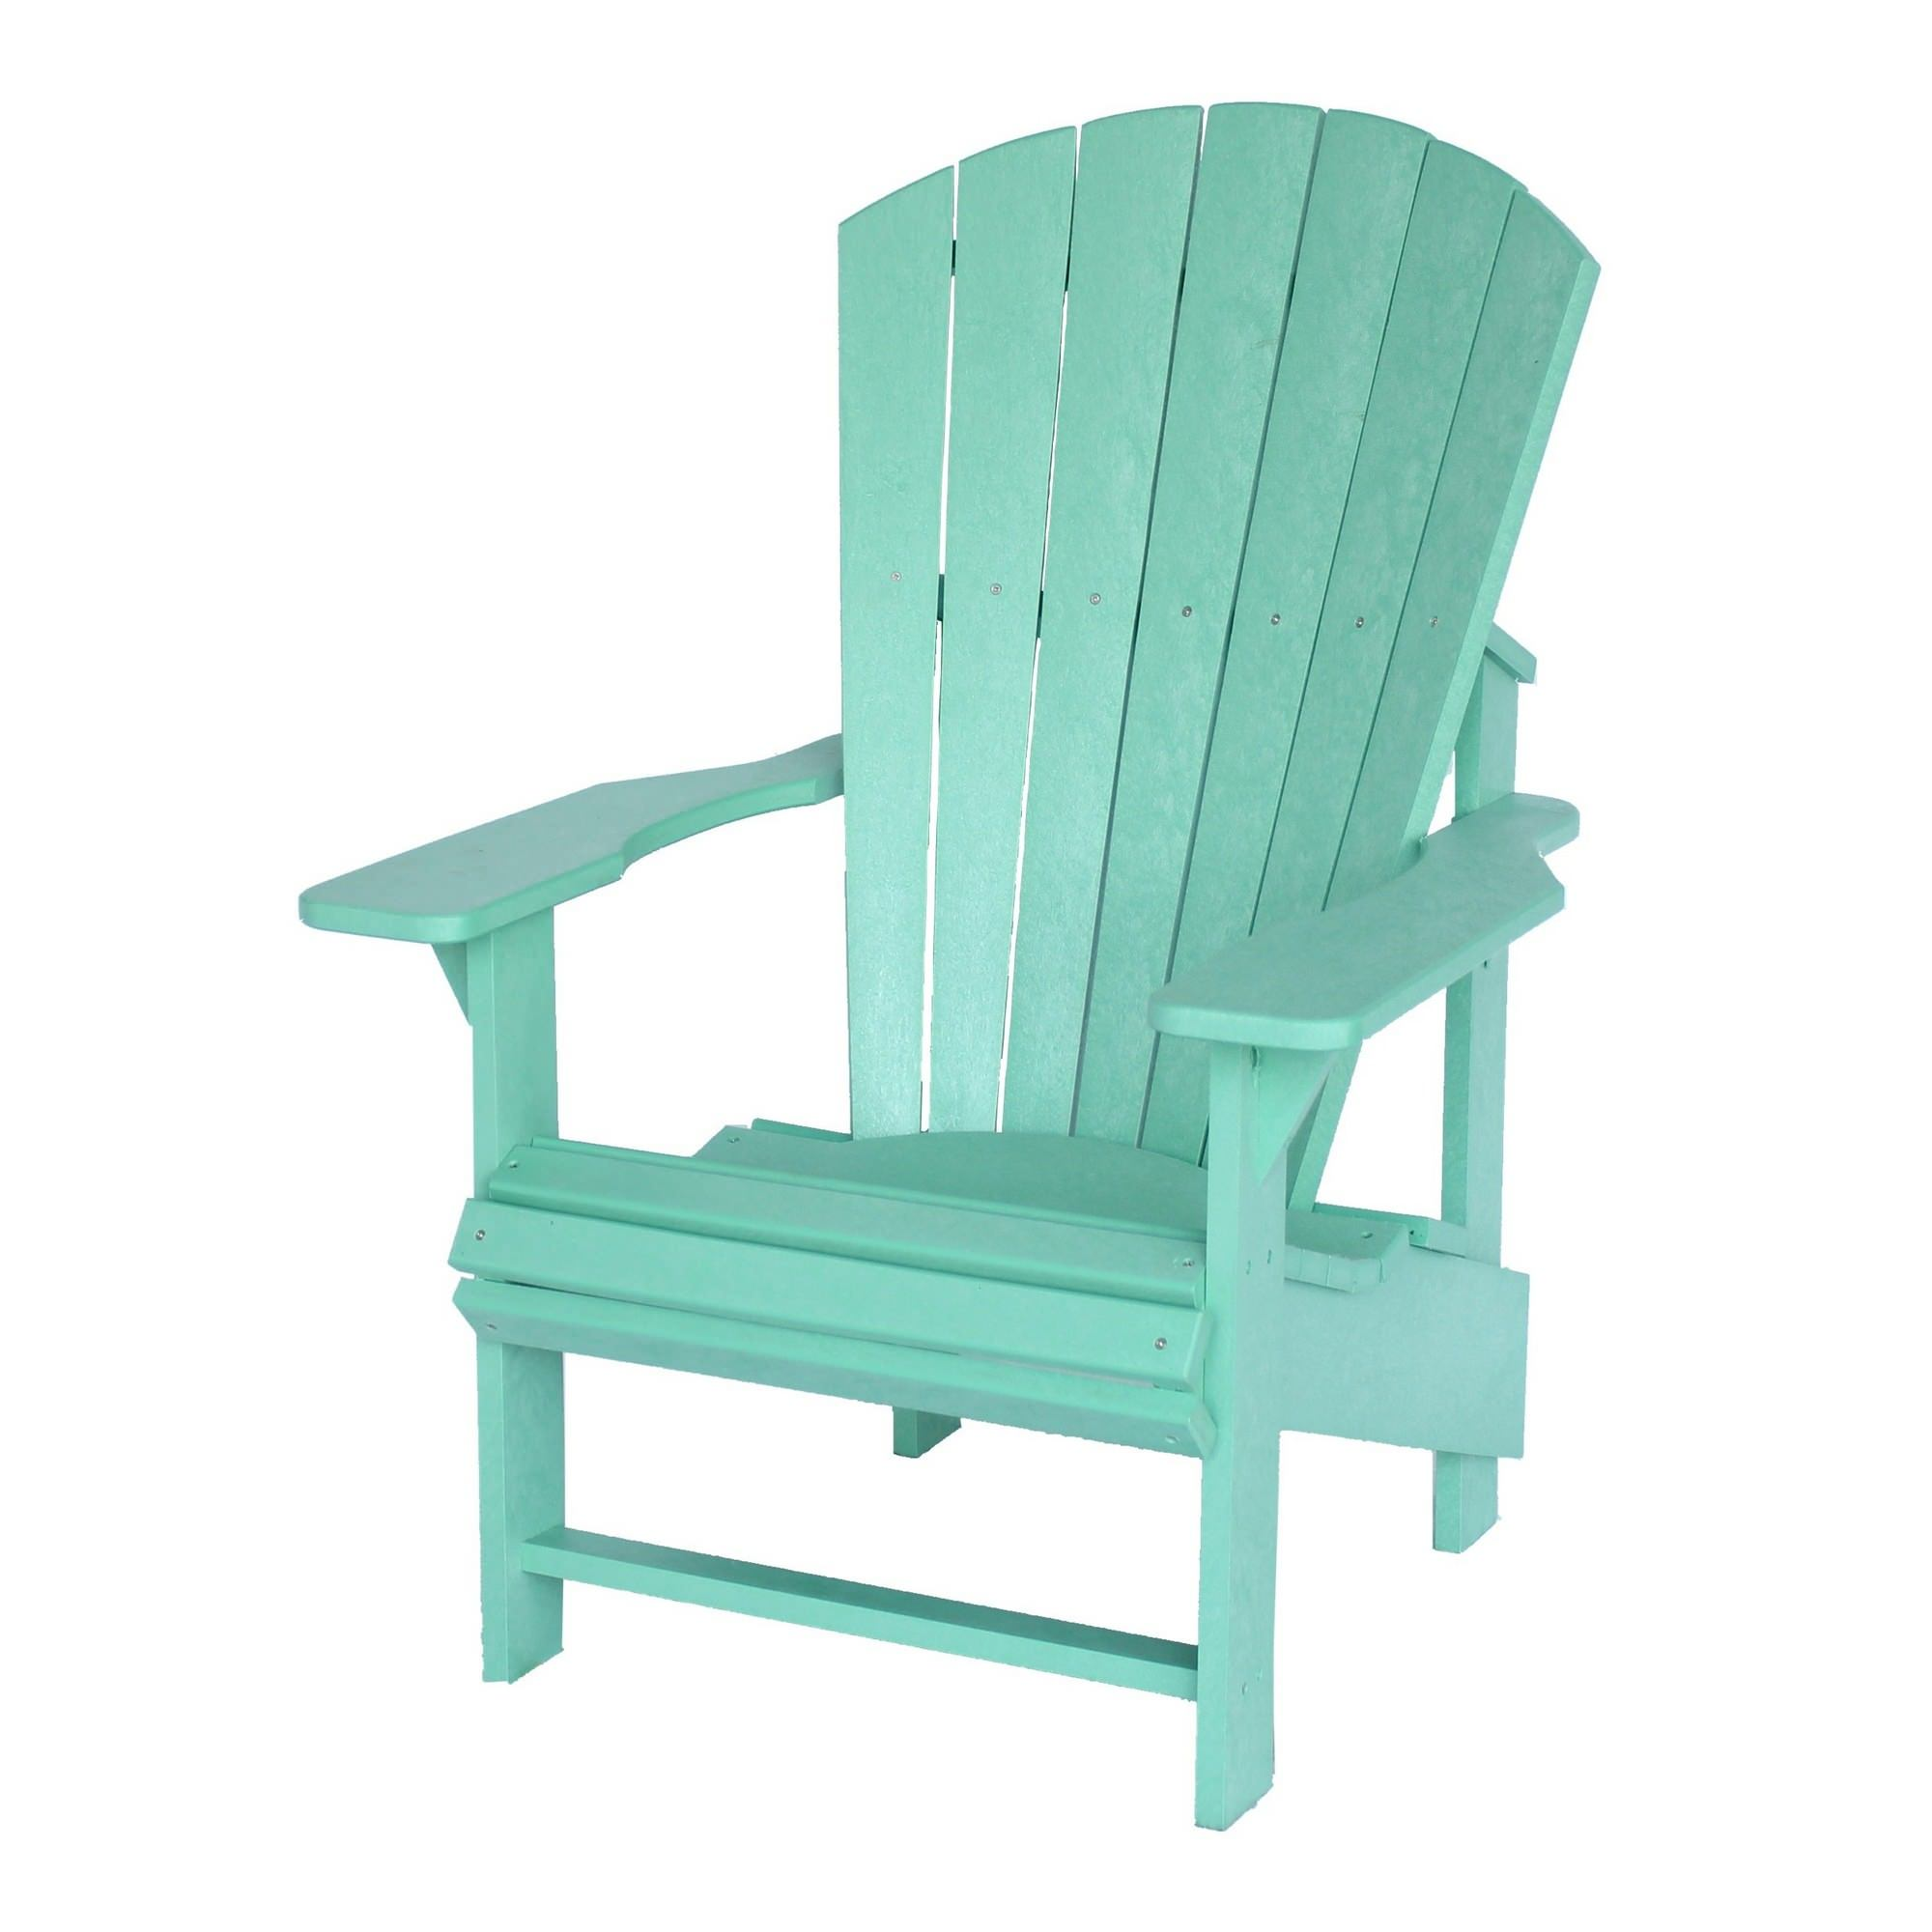 Mint Green Upright Polywood Adirondack Chair